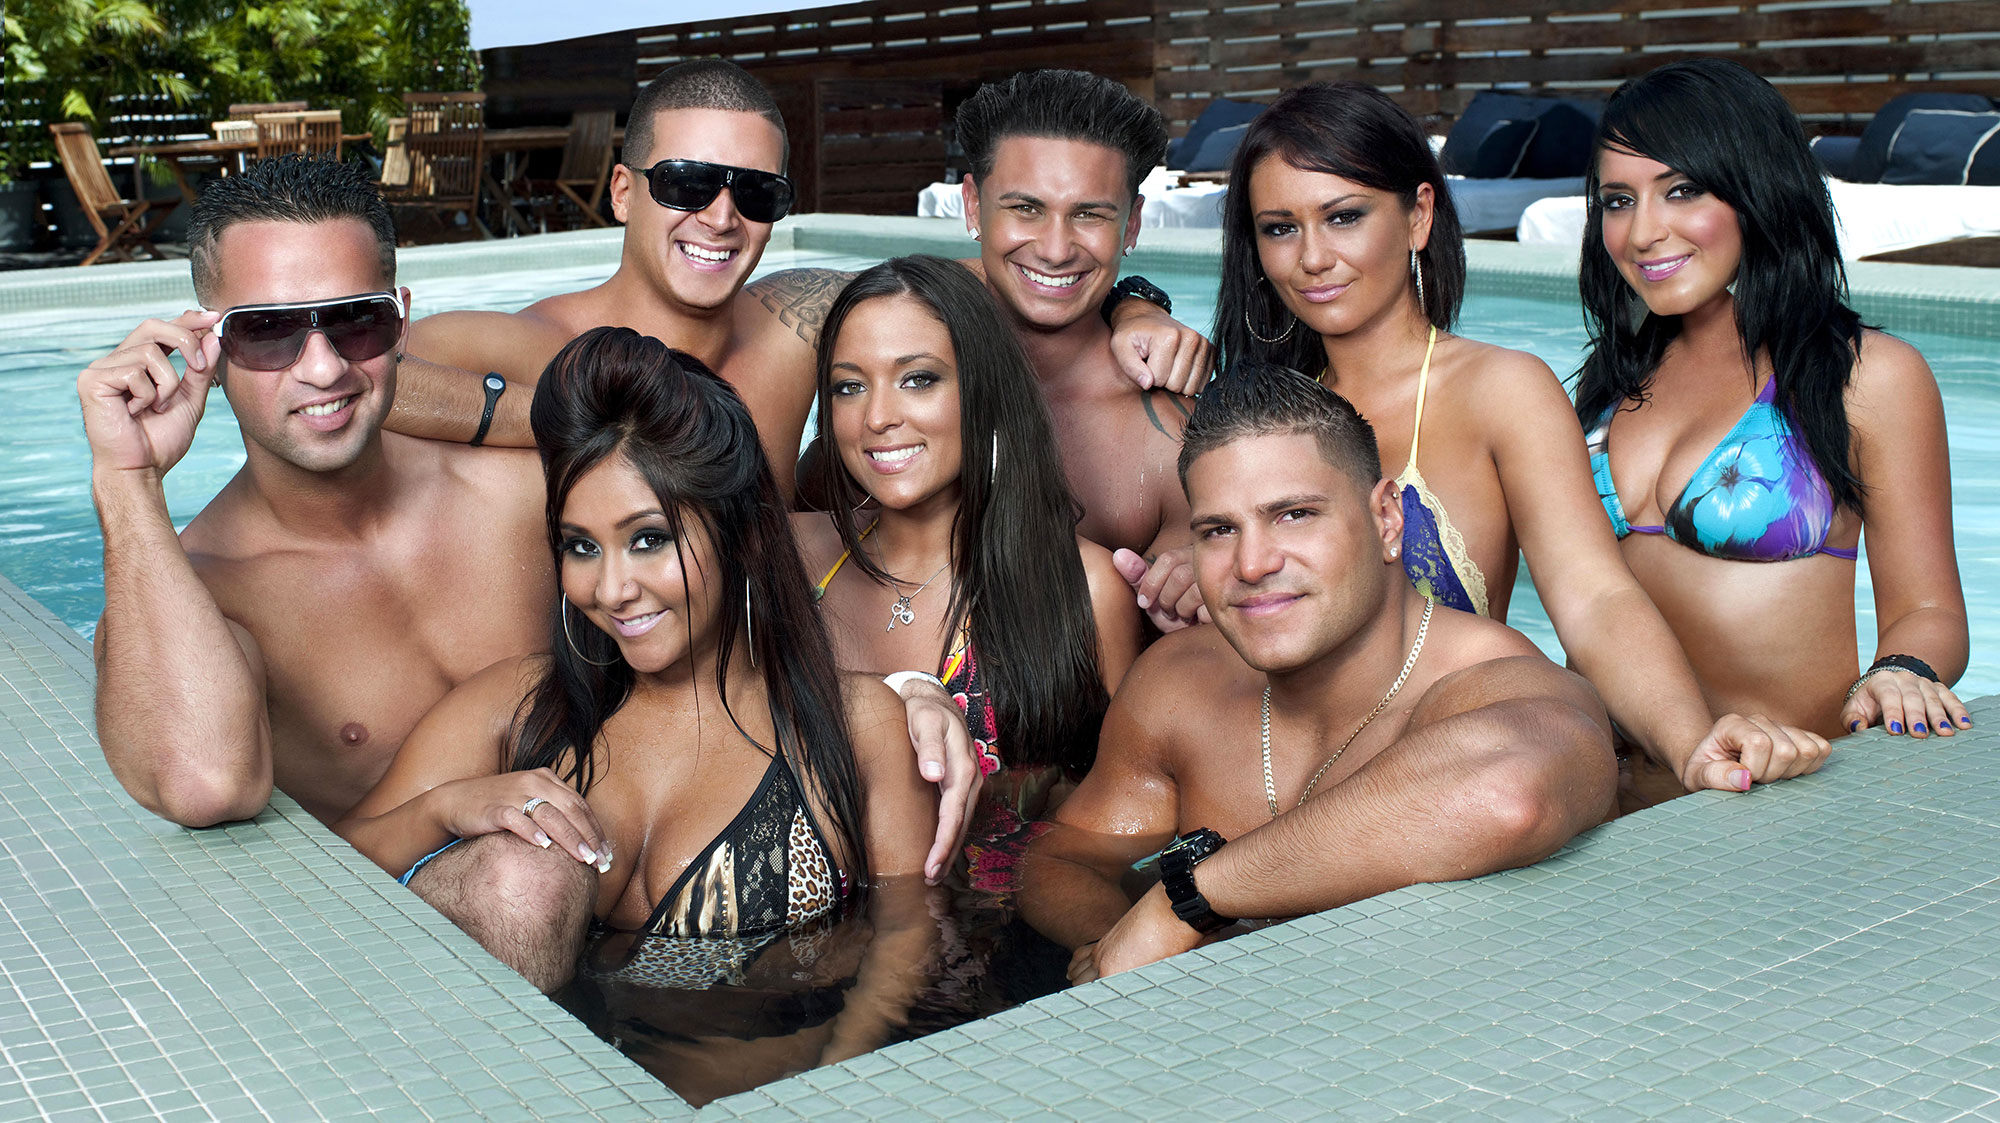 Angelina's Drama With the 'Jersey Shore' Cast Through the Years